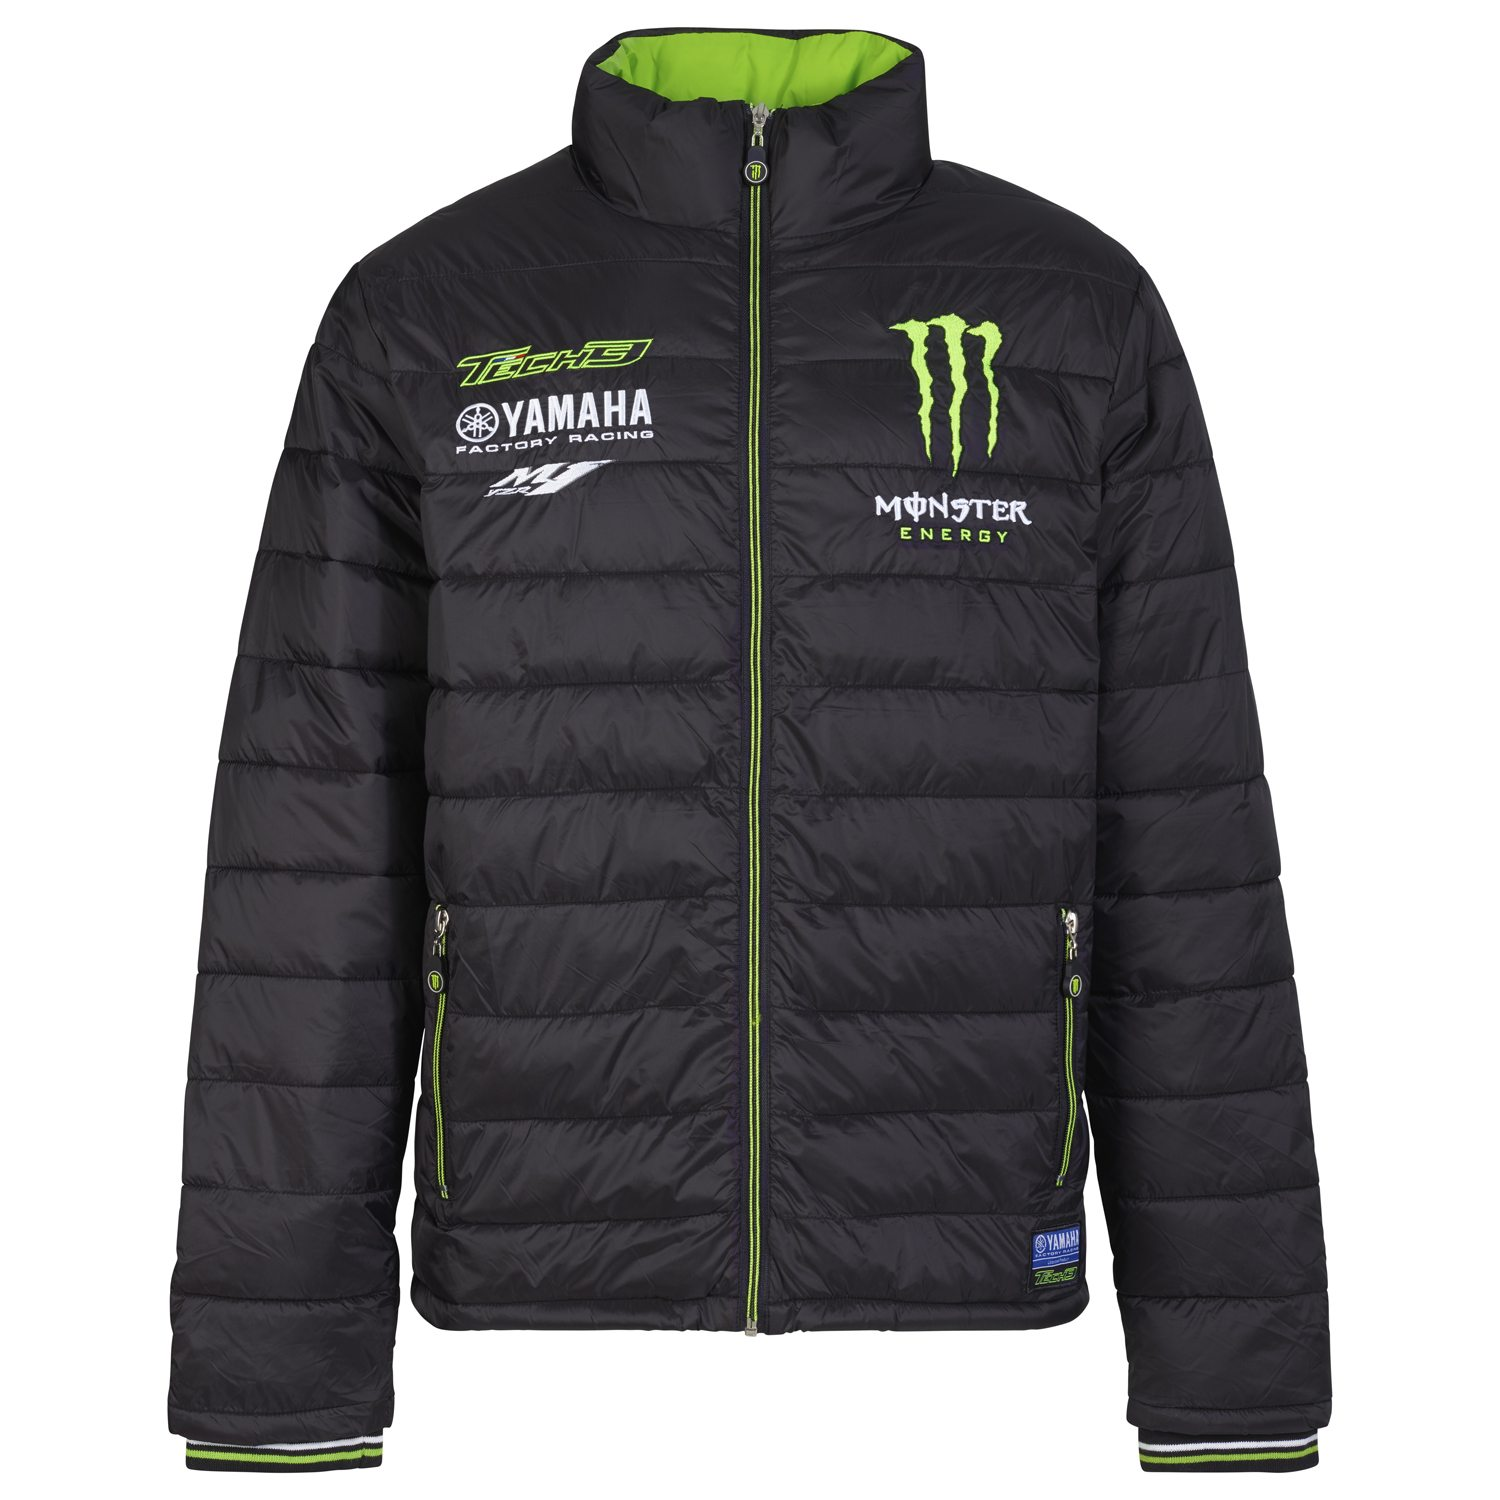 GIACCA PIUMINO YAMAHA M1 MONSTER ENERGY TECH 3 MOTOGP 2017 - 2018 TAGLIA XXL NEW